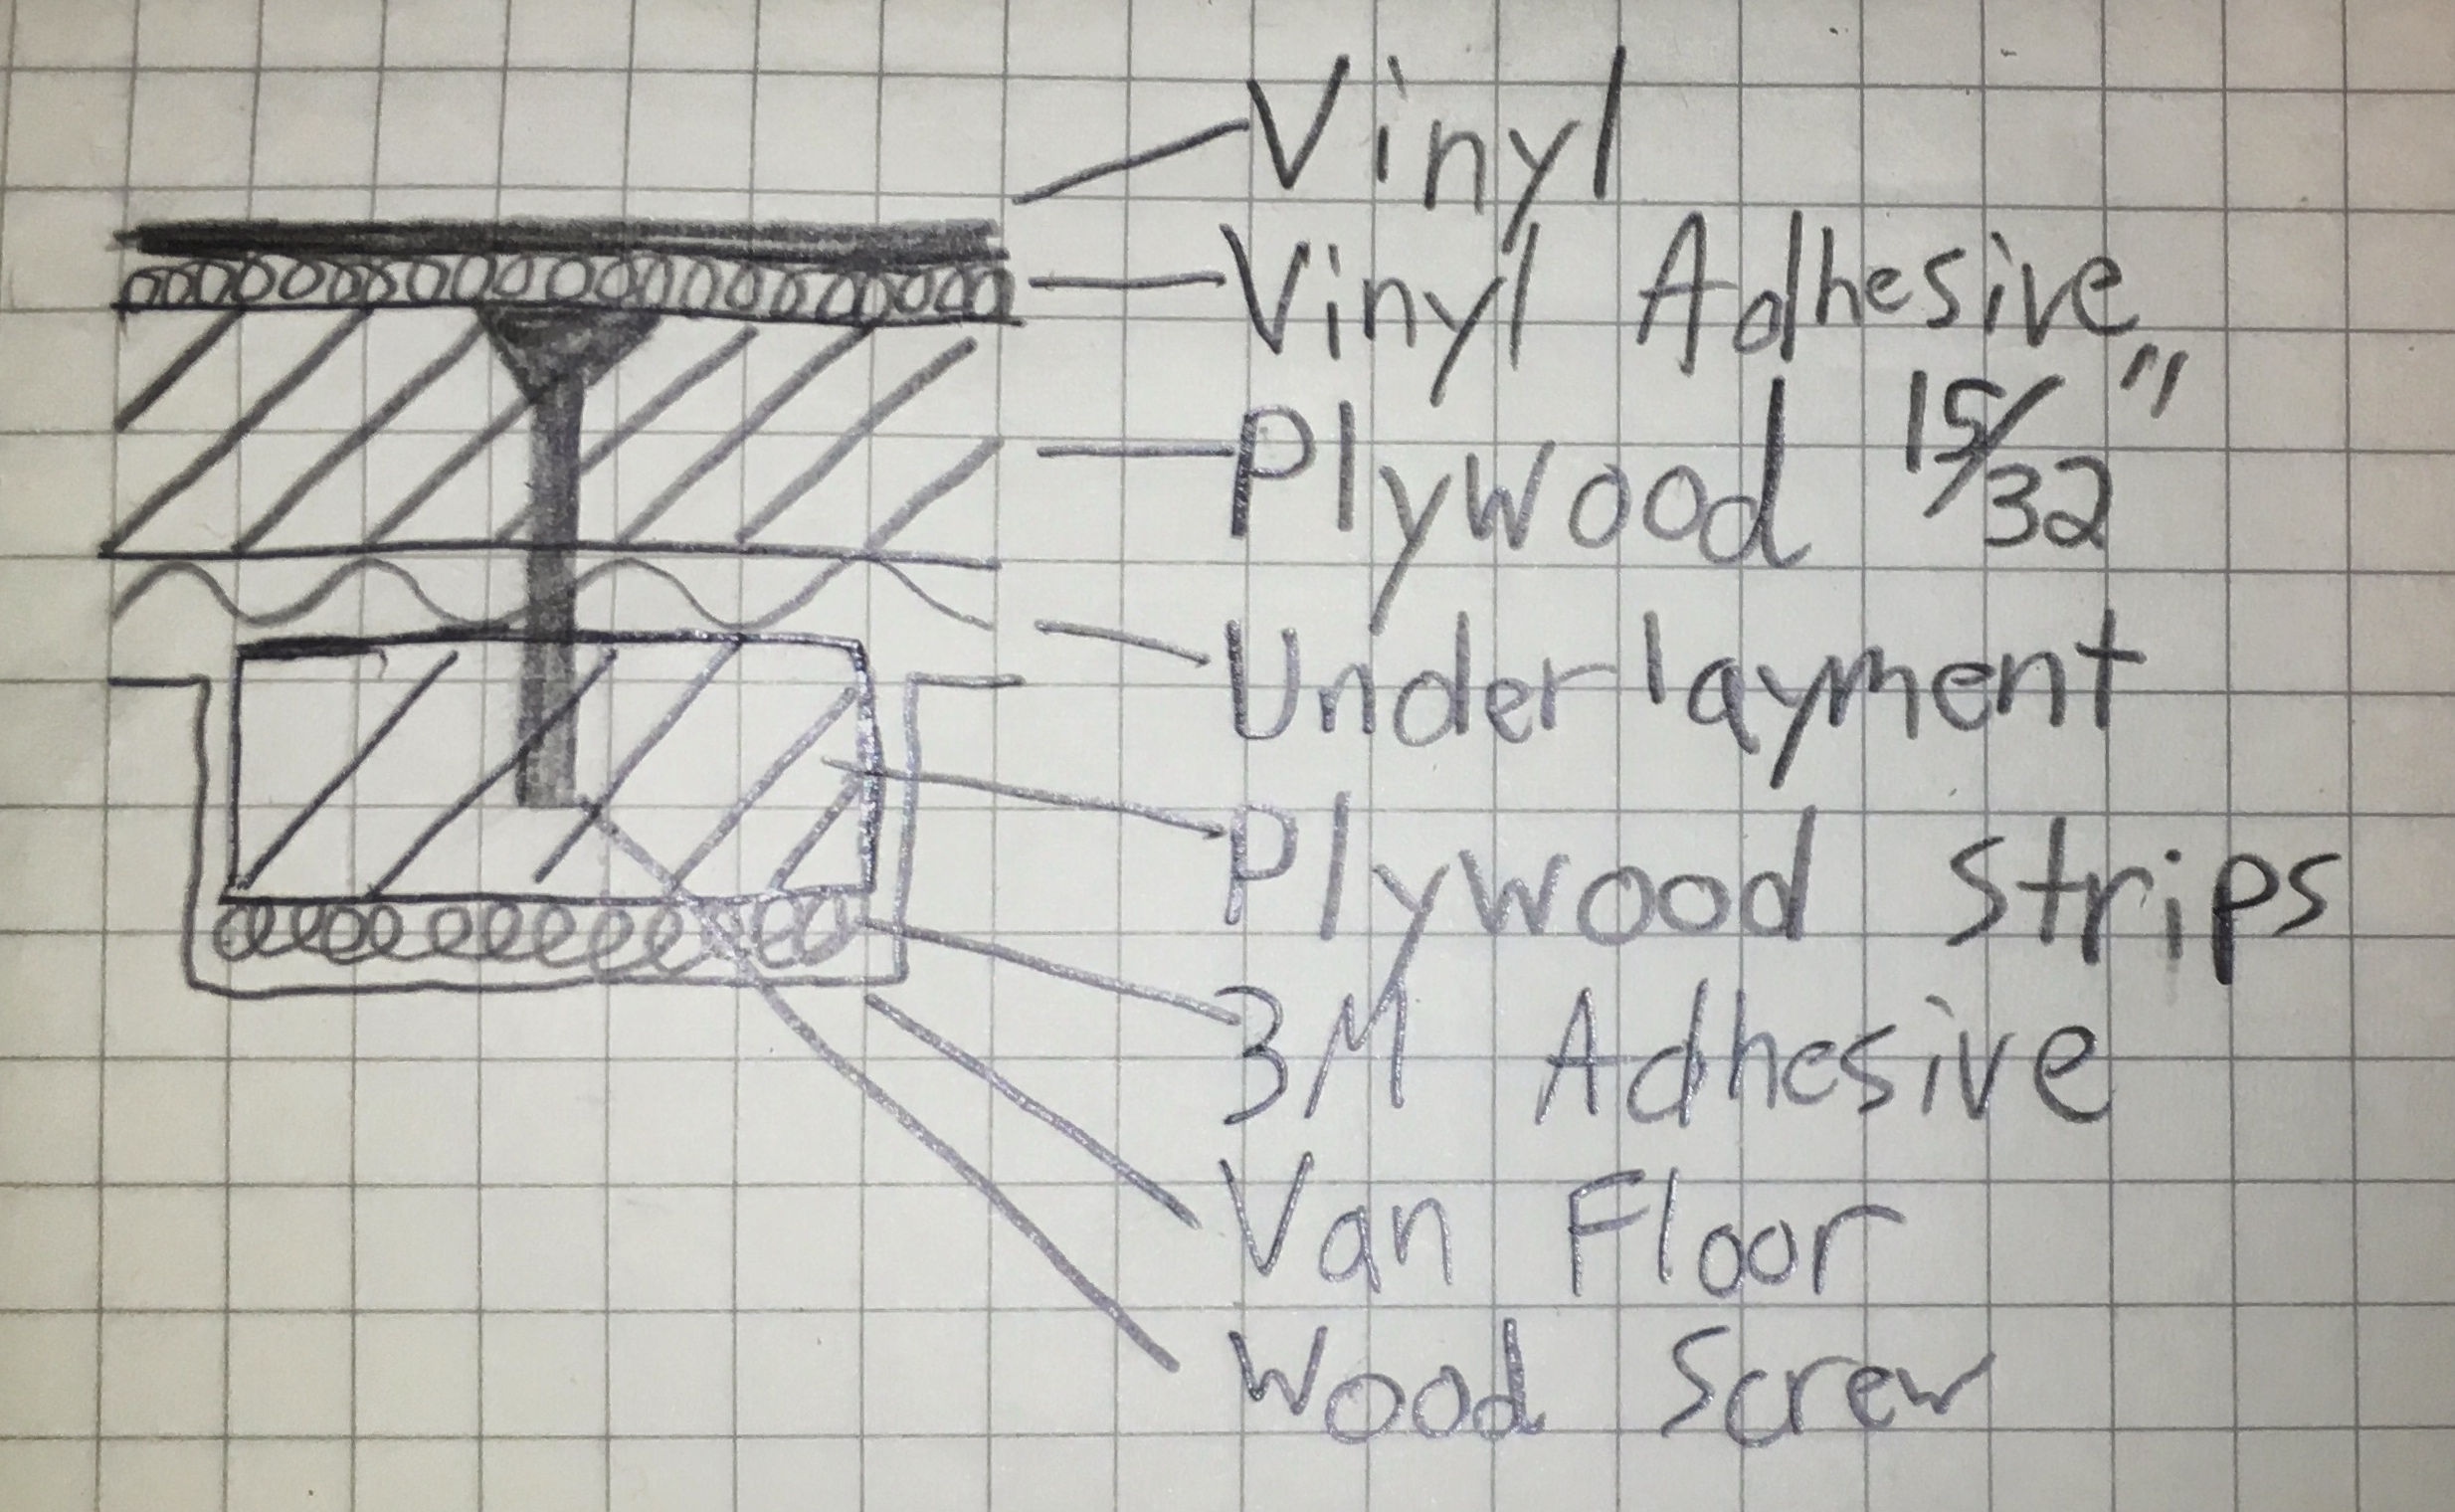 HowTo Install A Vinyl Floor In Your Van Moreys In Transit